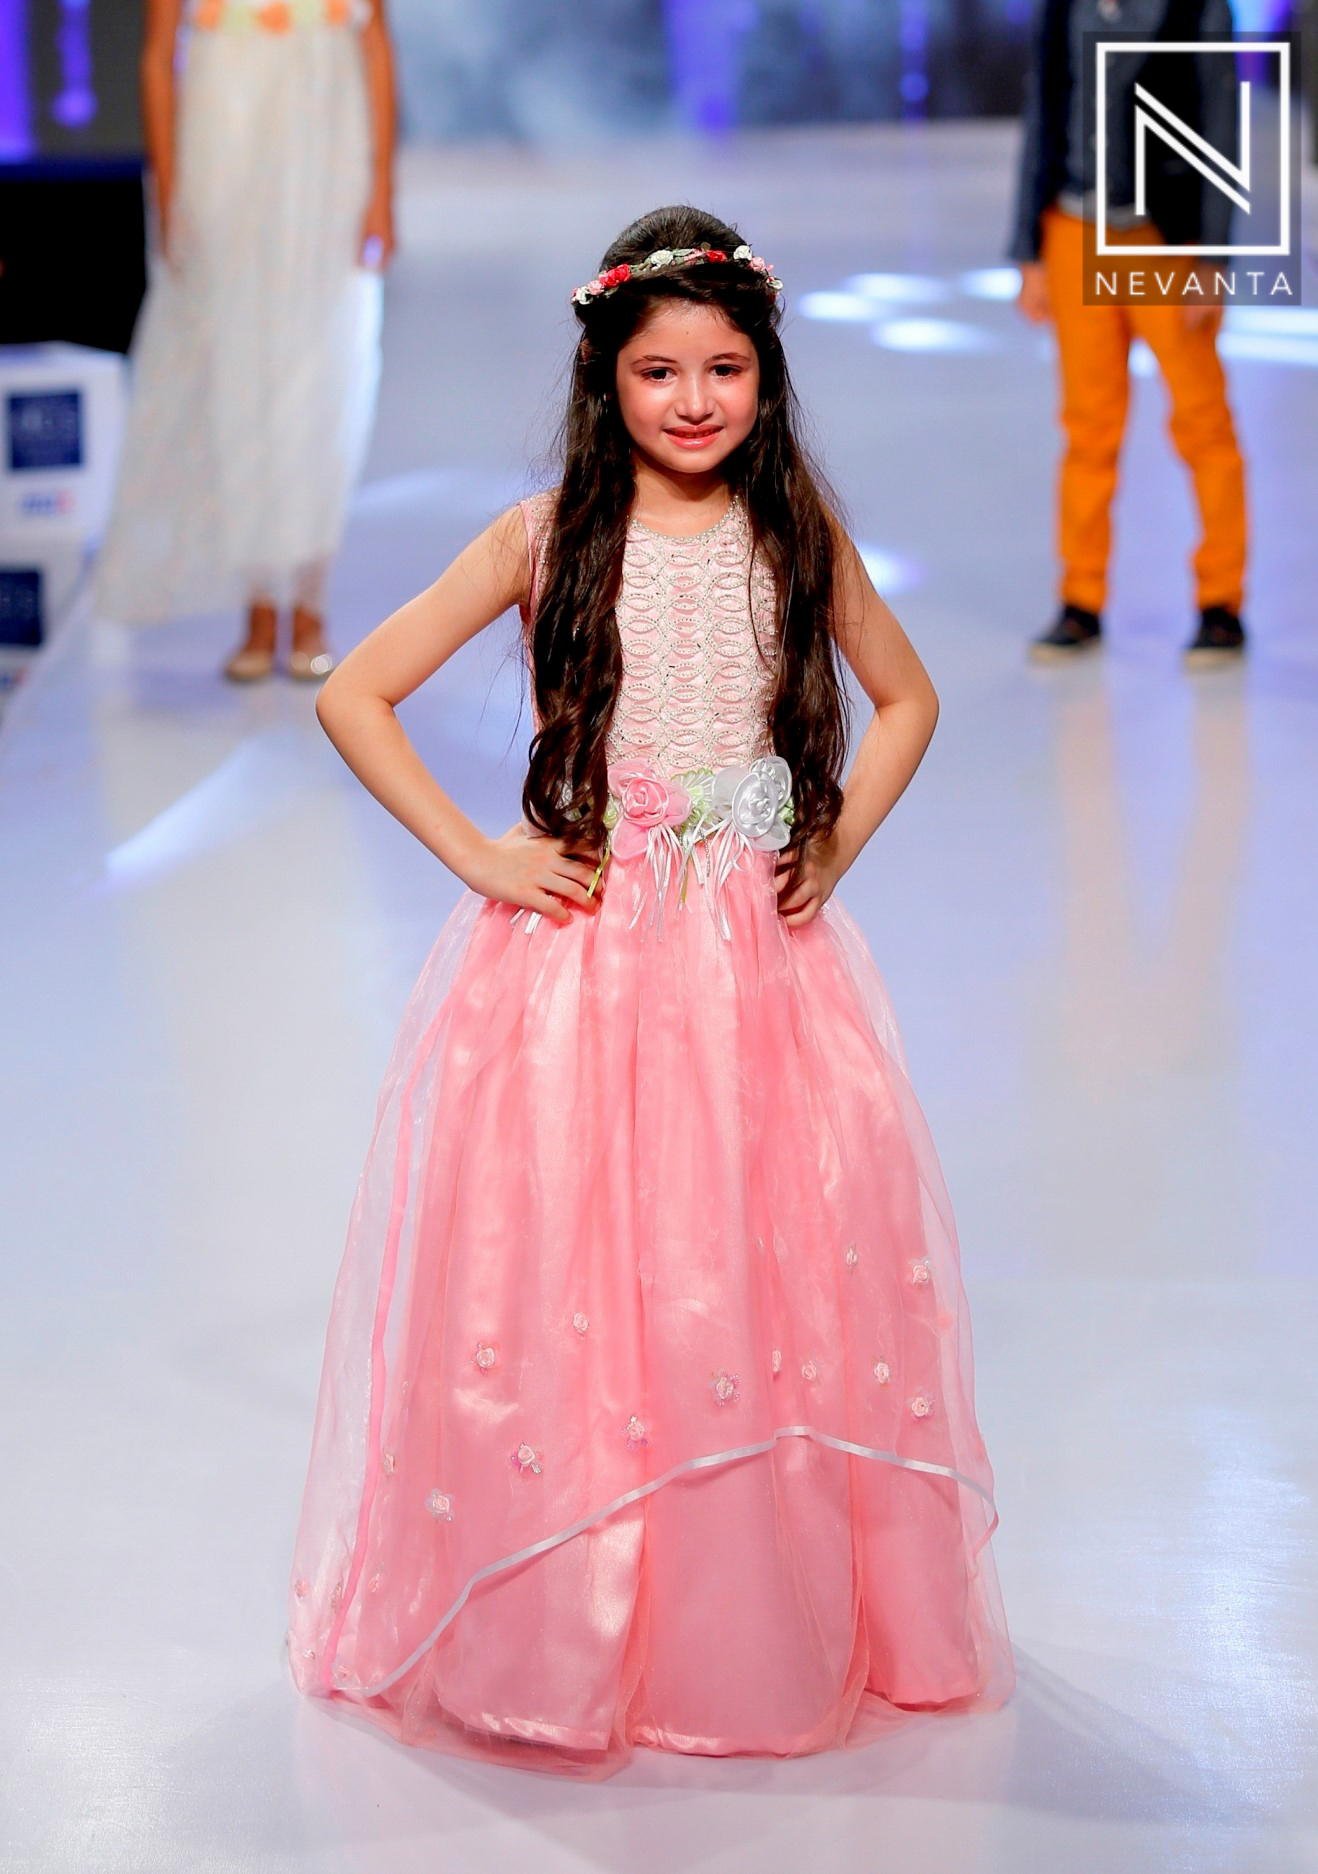 Harshaali Malhotra Walked The Ramp In A Pink Gown At India Kids Fashion Week 2016 Nevanta